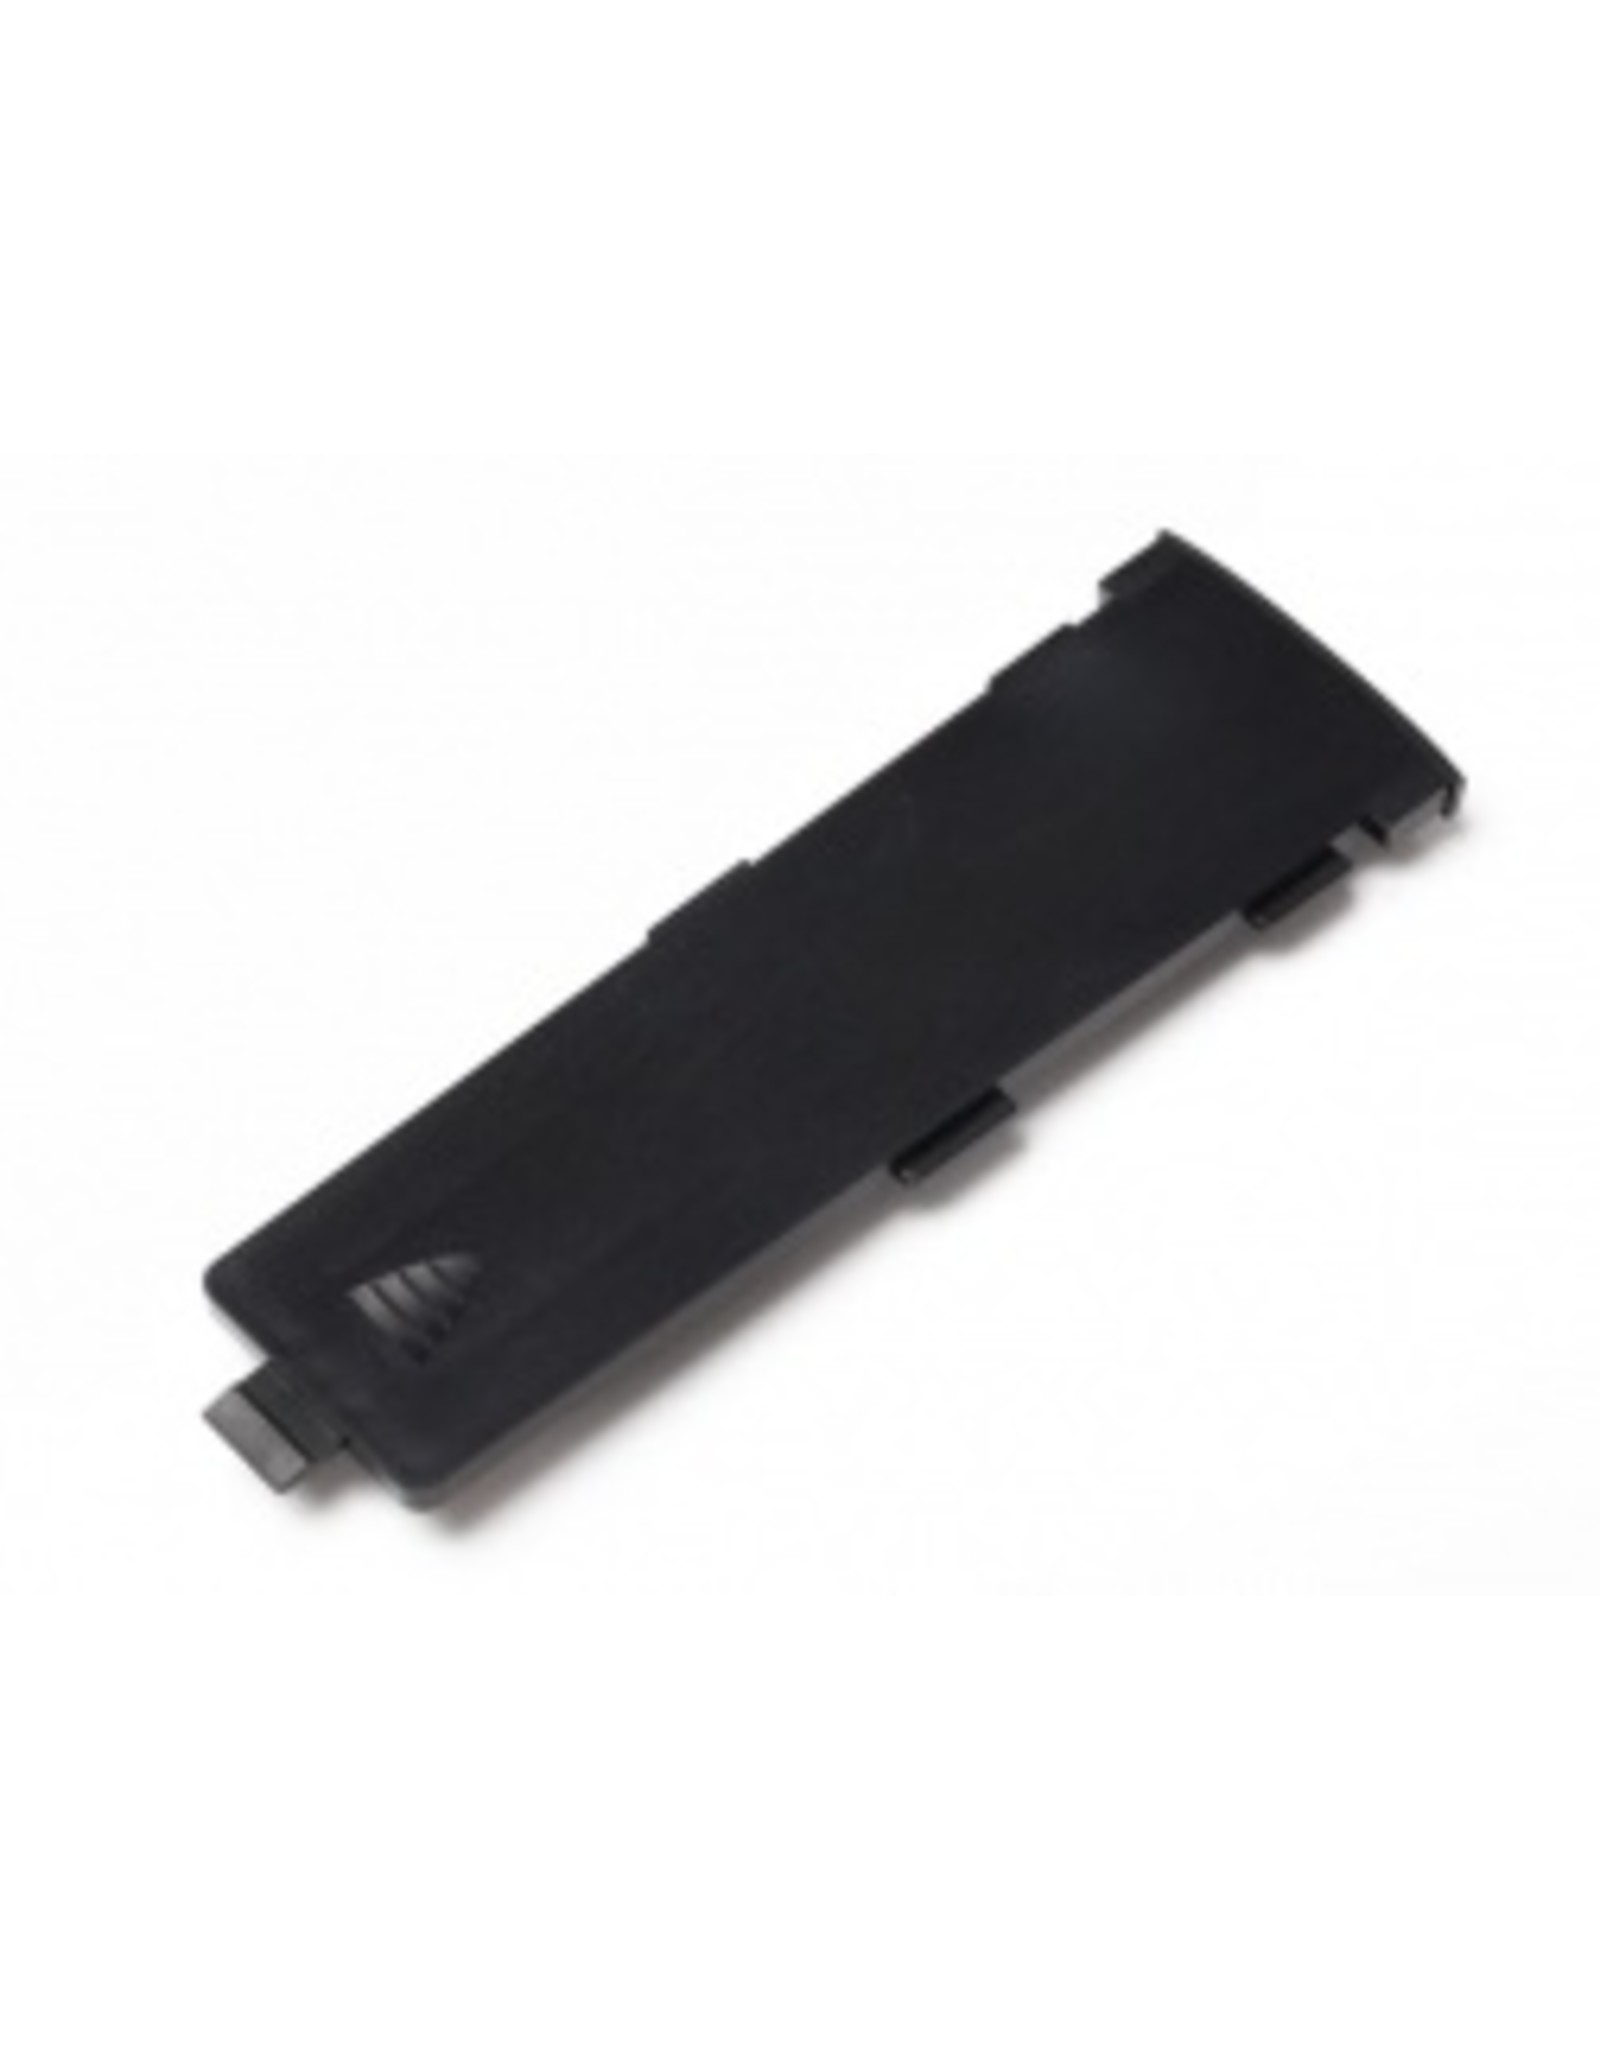 Traxxas Battery door, TQi transmitter (replacement for #6513, 6514, 6515 transmitters) (6546)